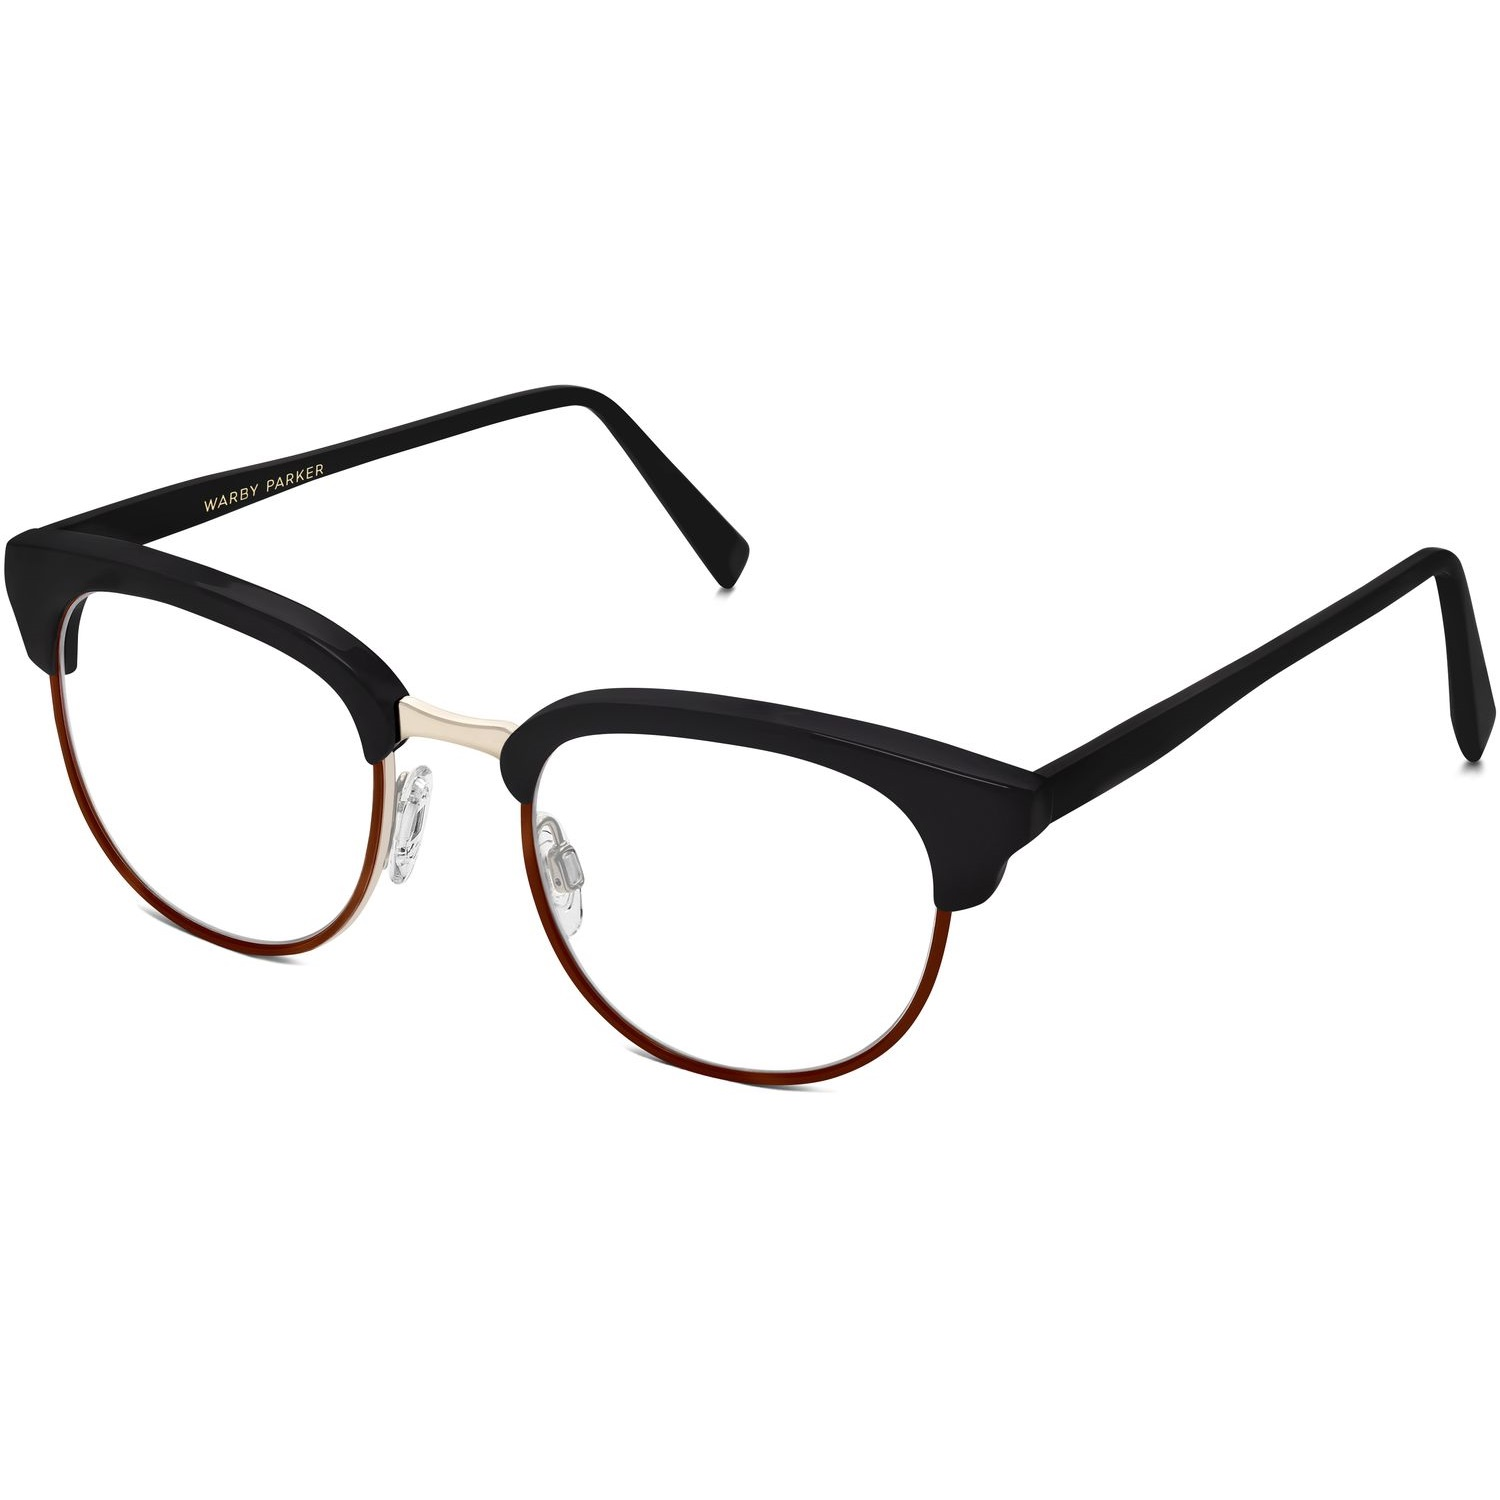 e70ef3676181 Webster Eyeglasses   Sunglasses — Eyewear Blogger